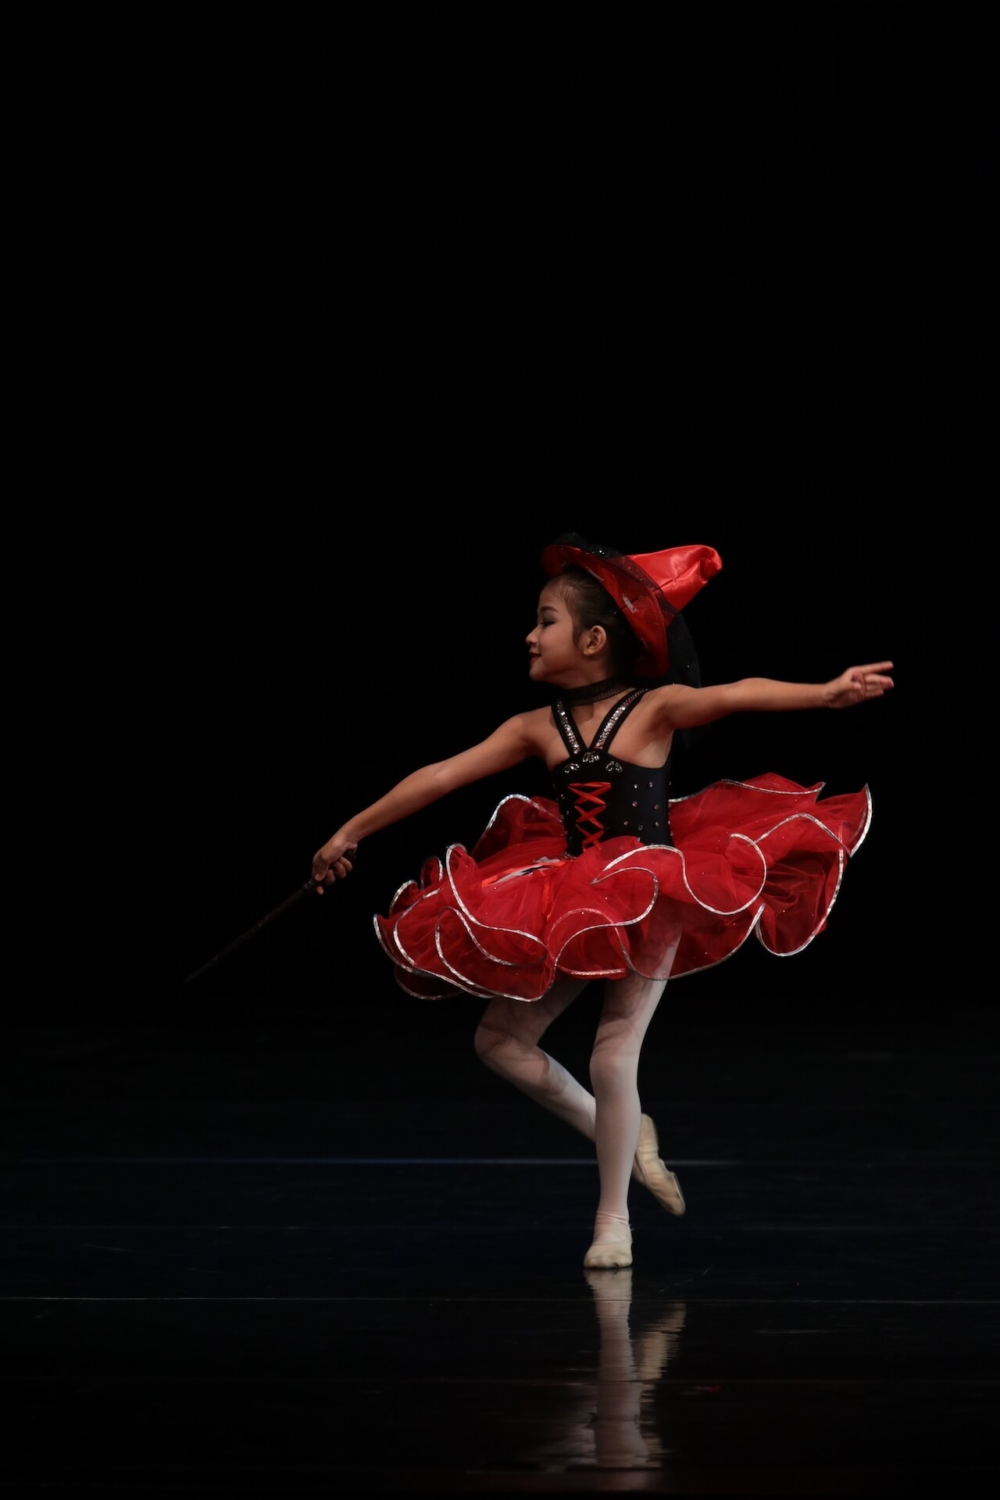 Dance Prix Indonesia 2019 – Young Talent Candidate